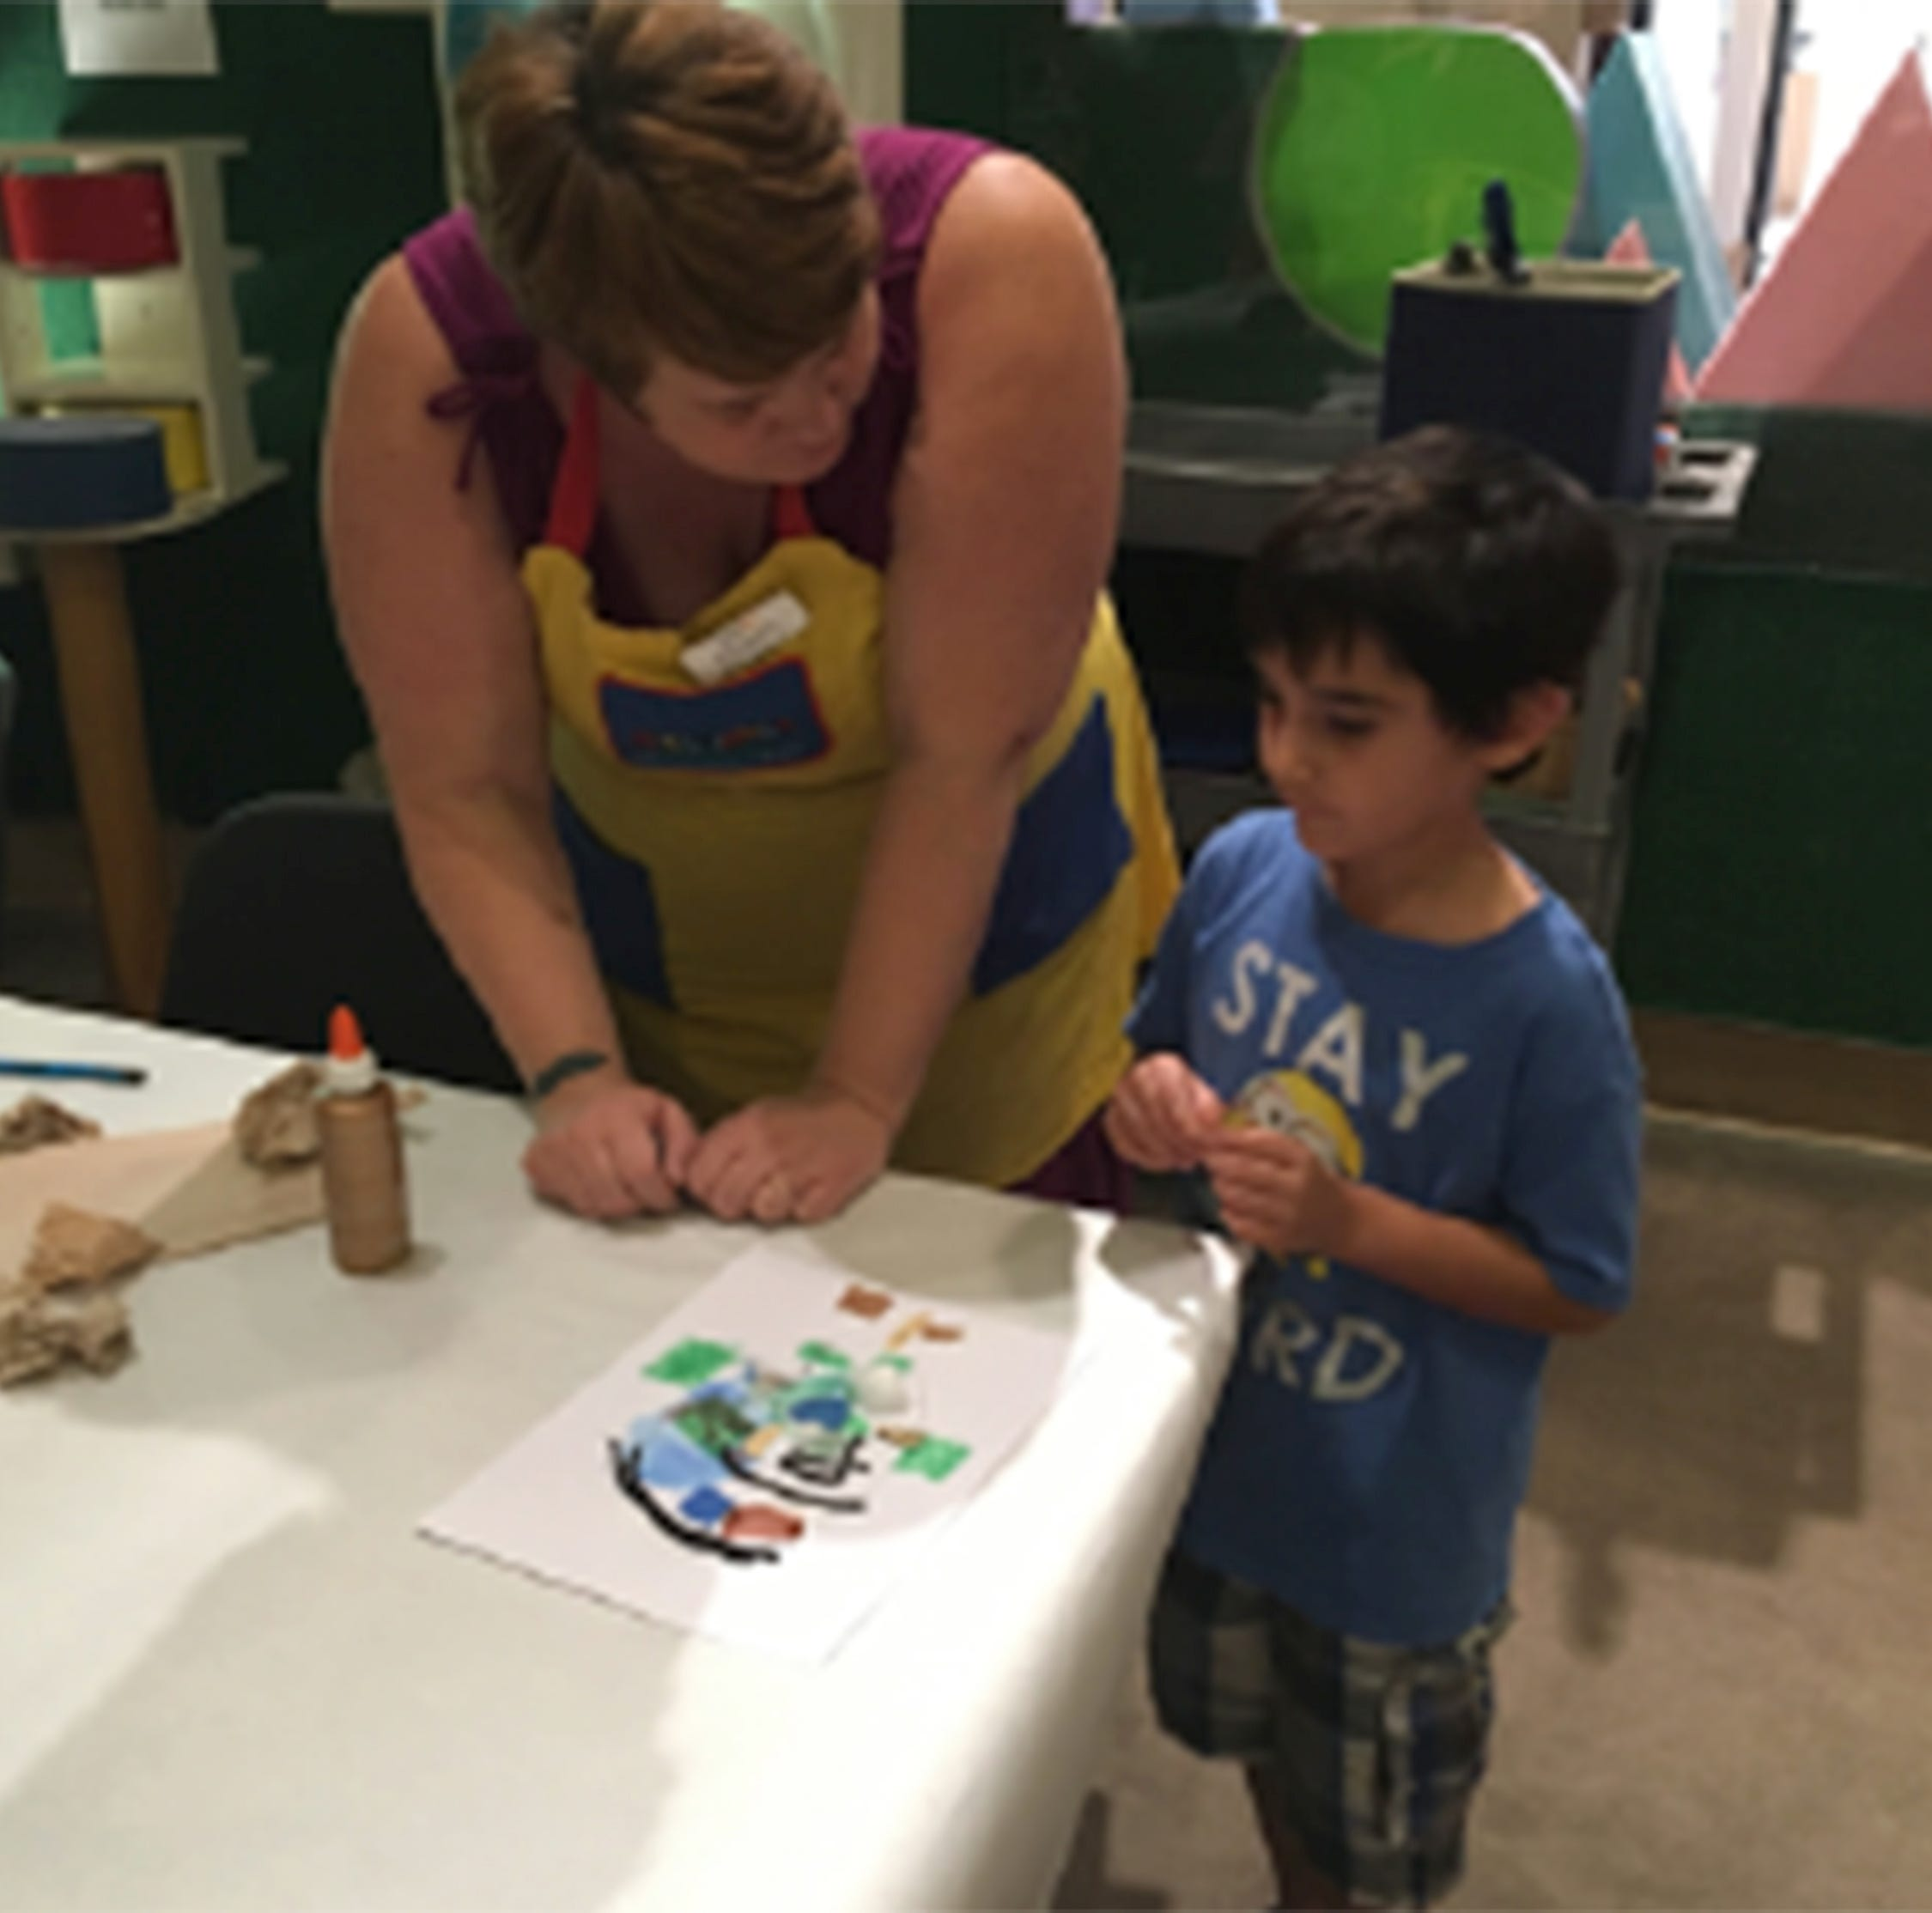 Montgomery Museum of Fine Arts recognizes World Autism Awareness Day